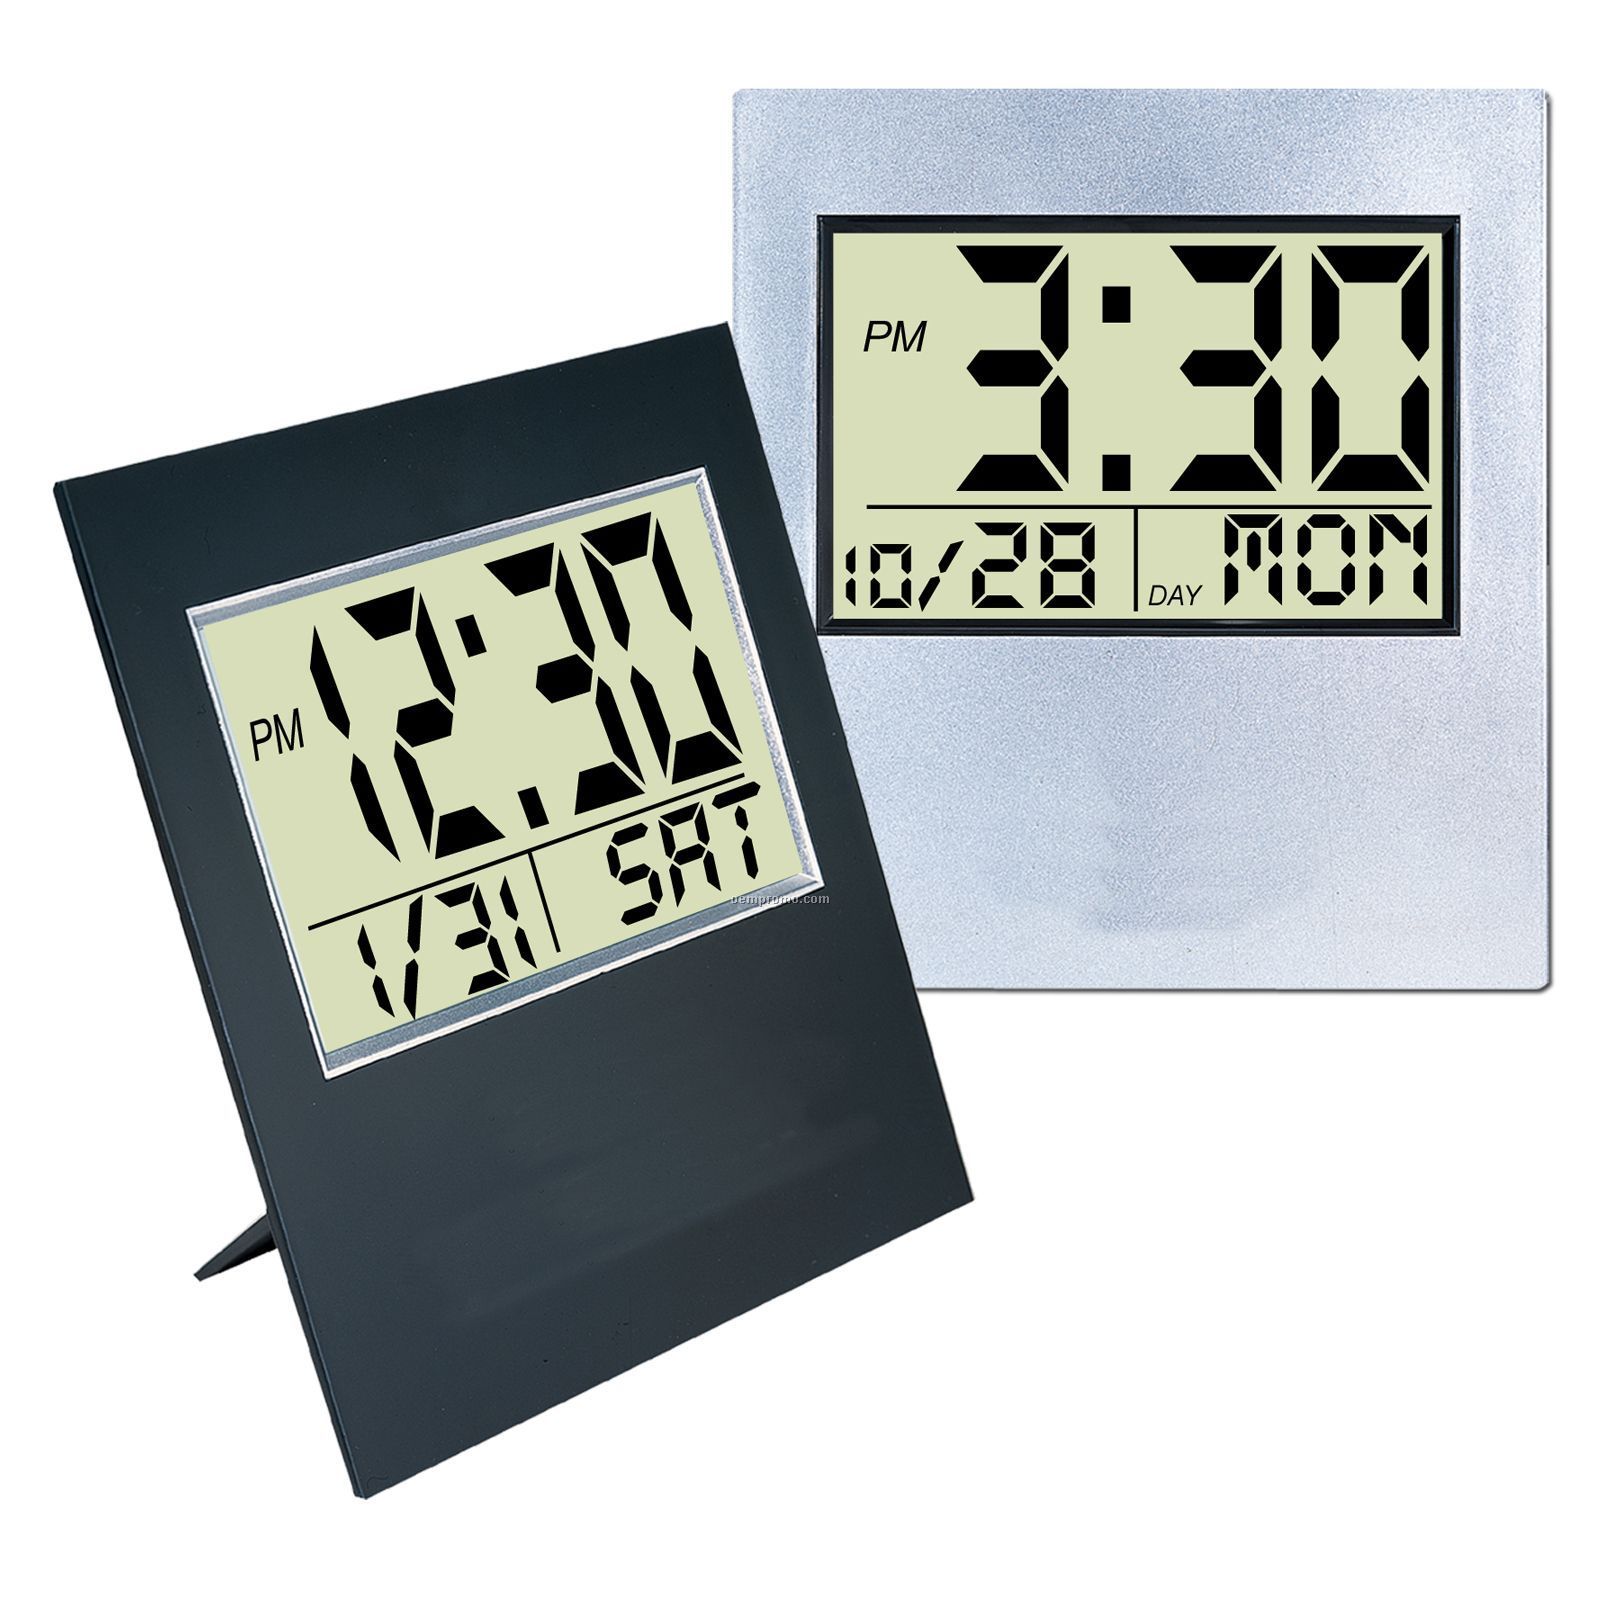 Giant Digital Wall Clock Digital Wall Or Desk Top Clock Large China Wholesale